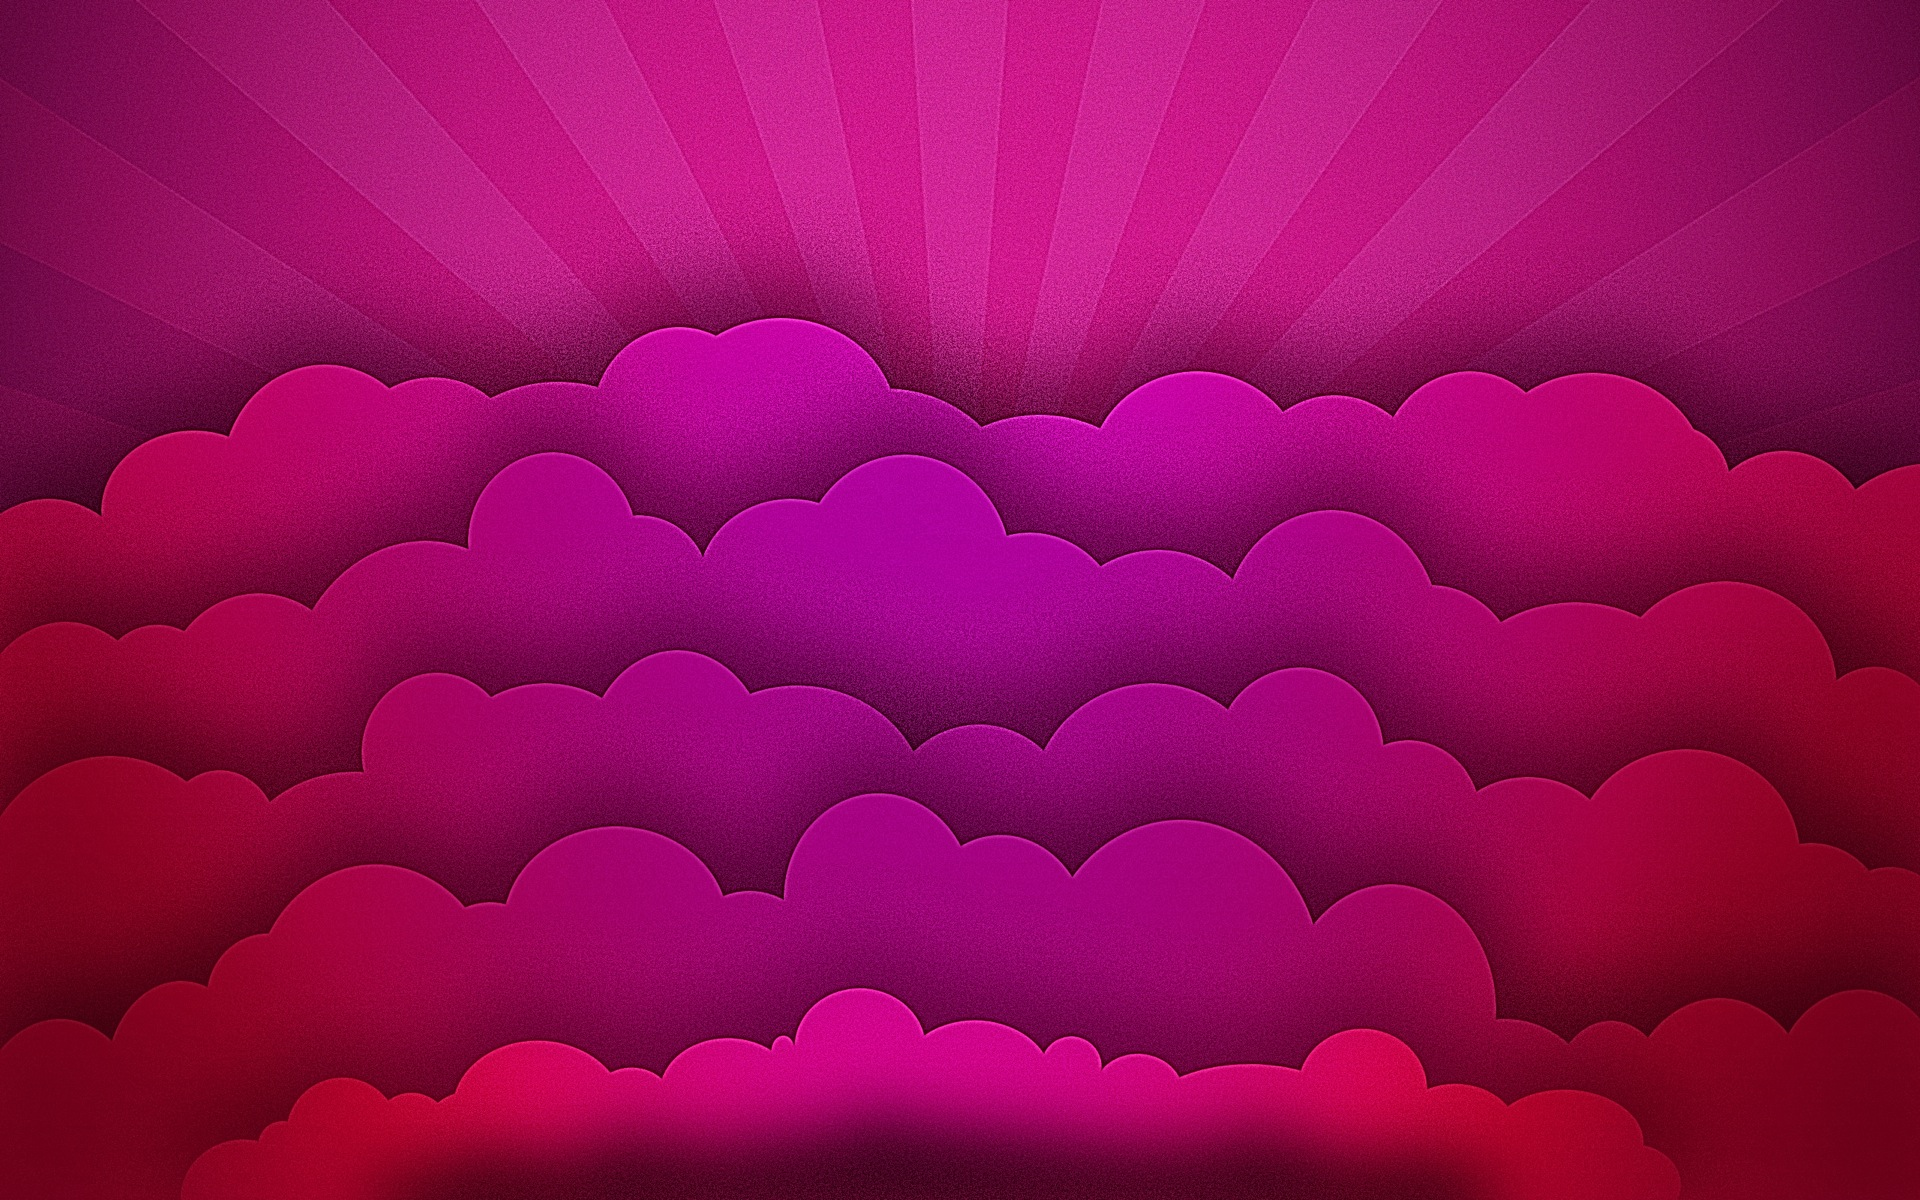 Abstract clouds pink wallpaper | 1920x1200 | 15683 ...